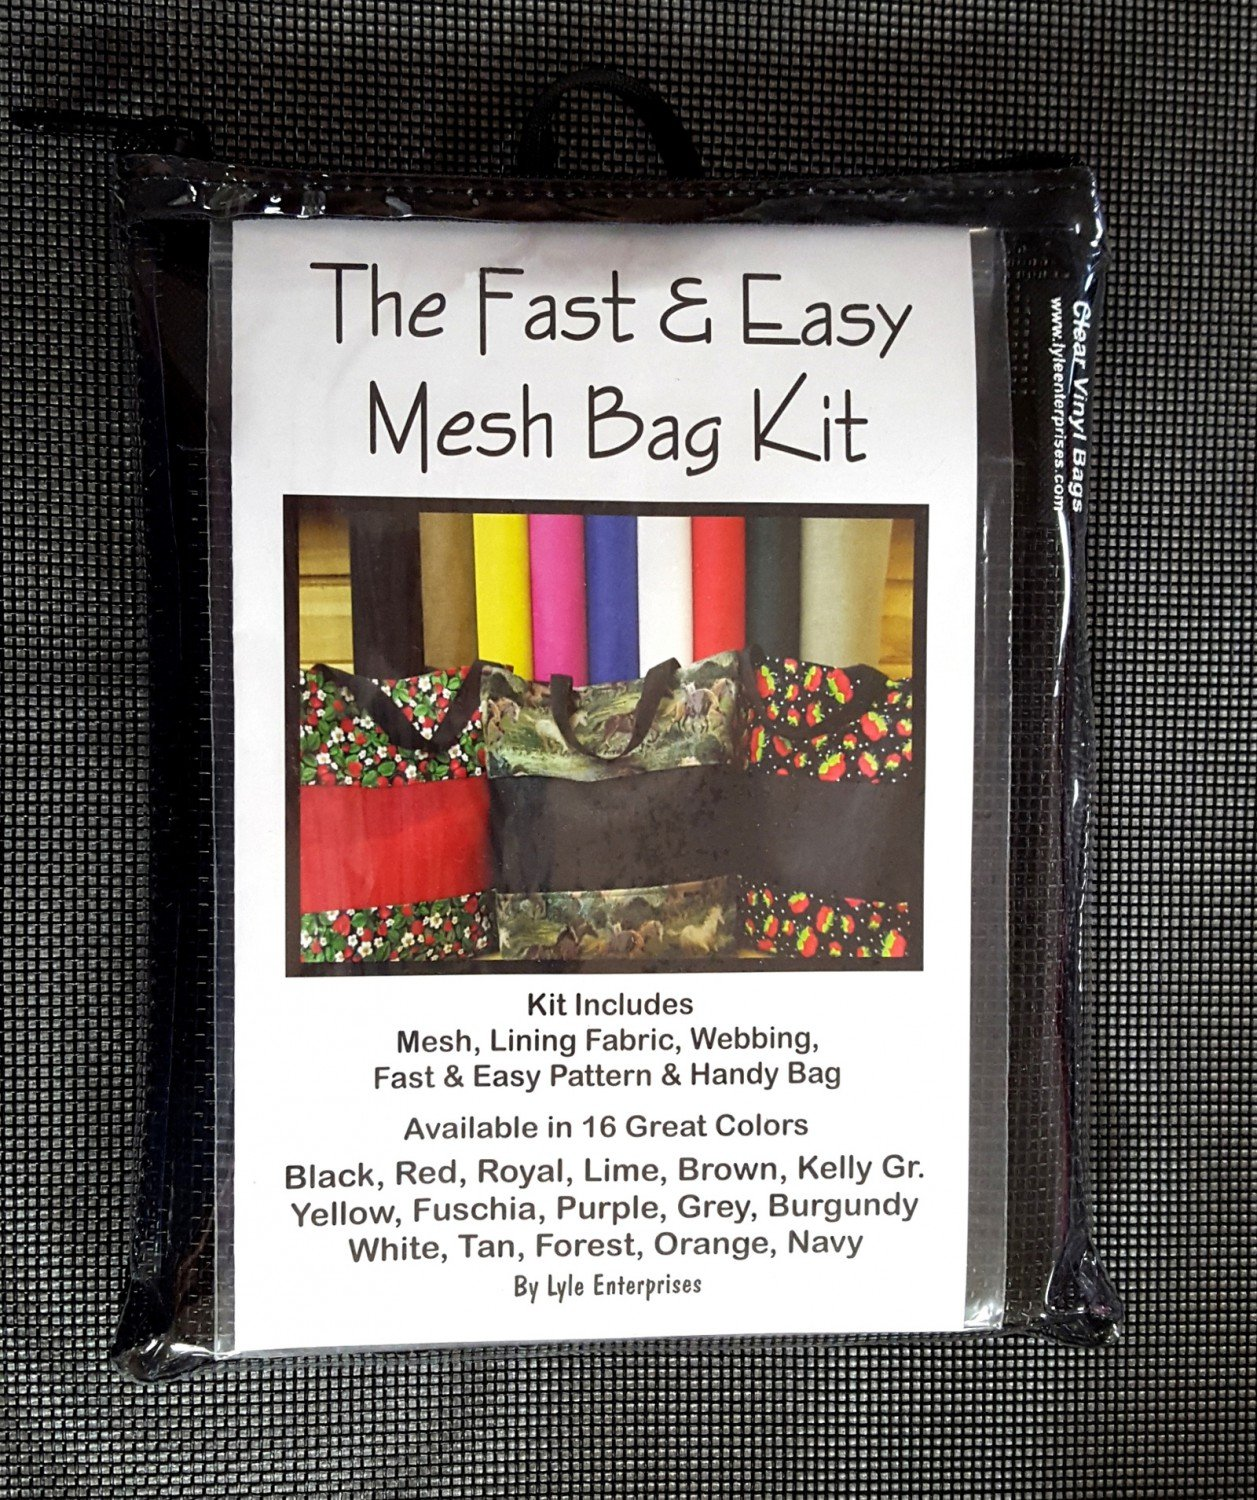 Black Mesh Bag Kit - MBK-02 - MAY BE RESTOCKED UPON REQUEST